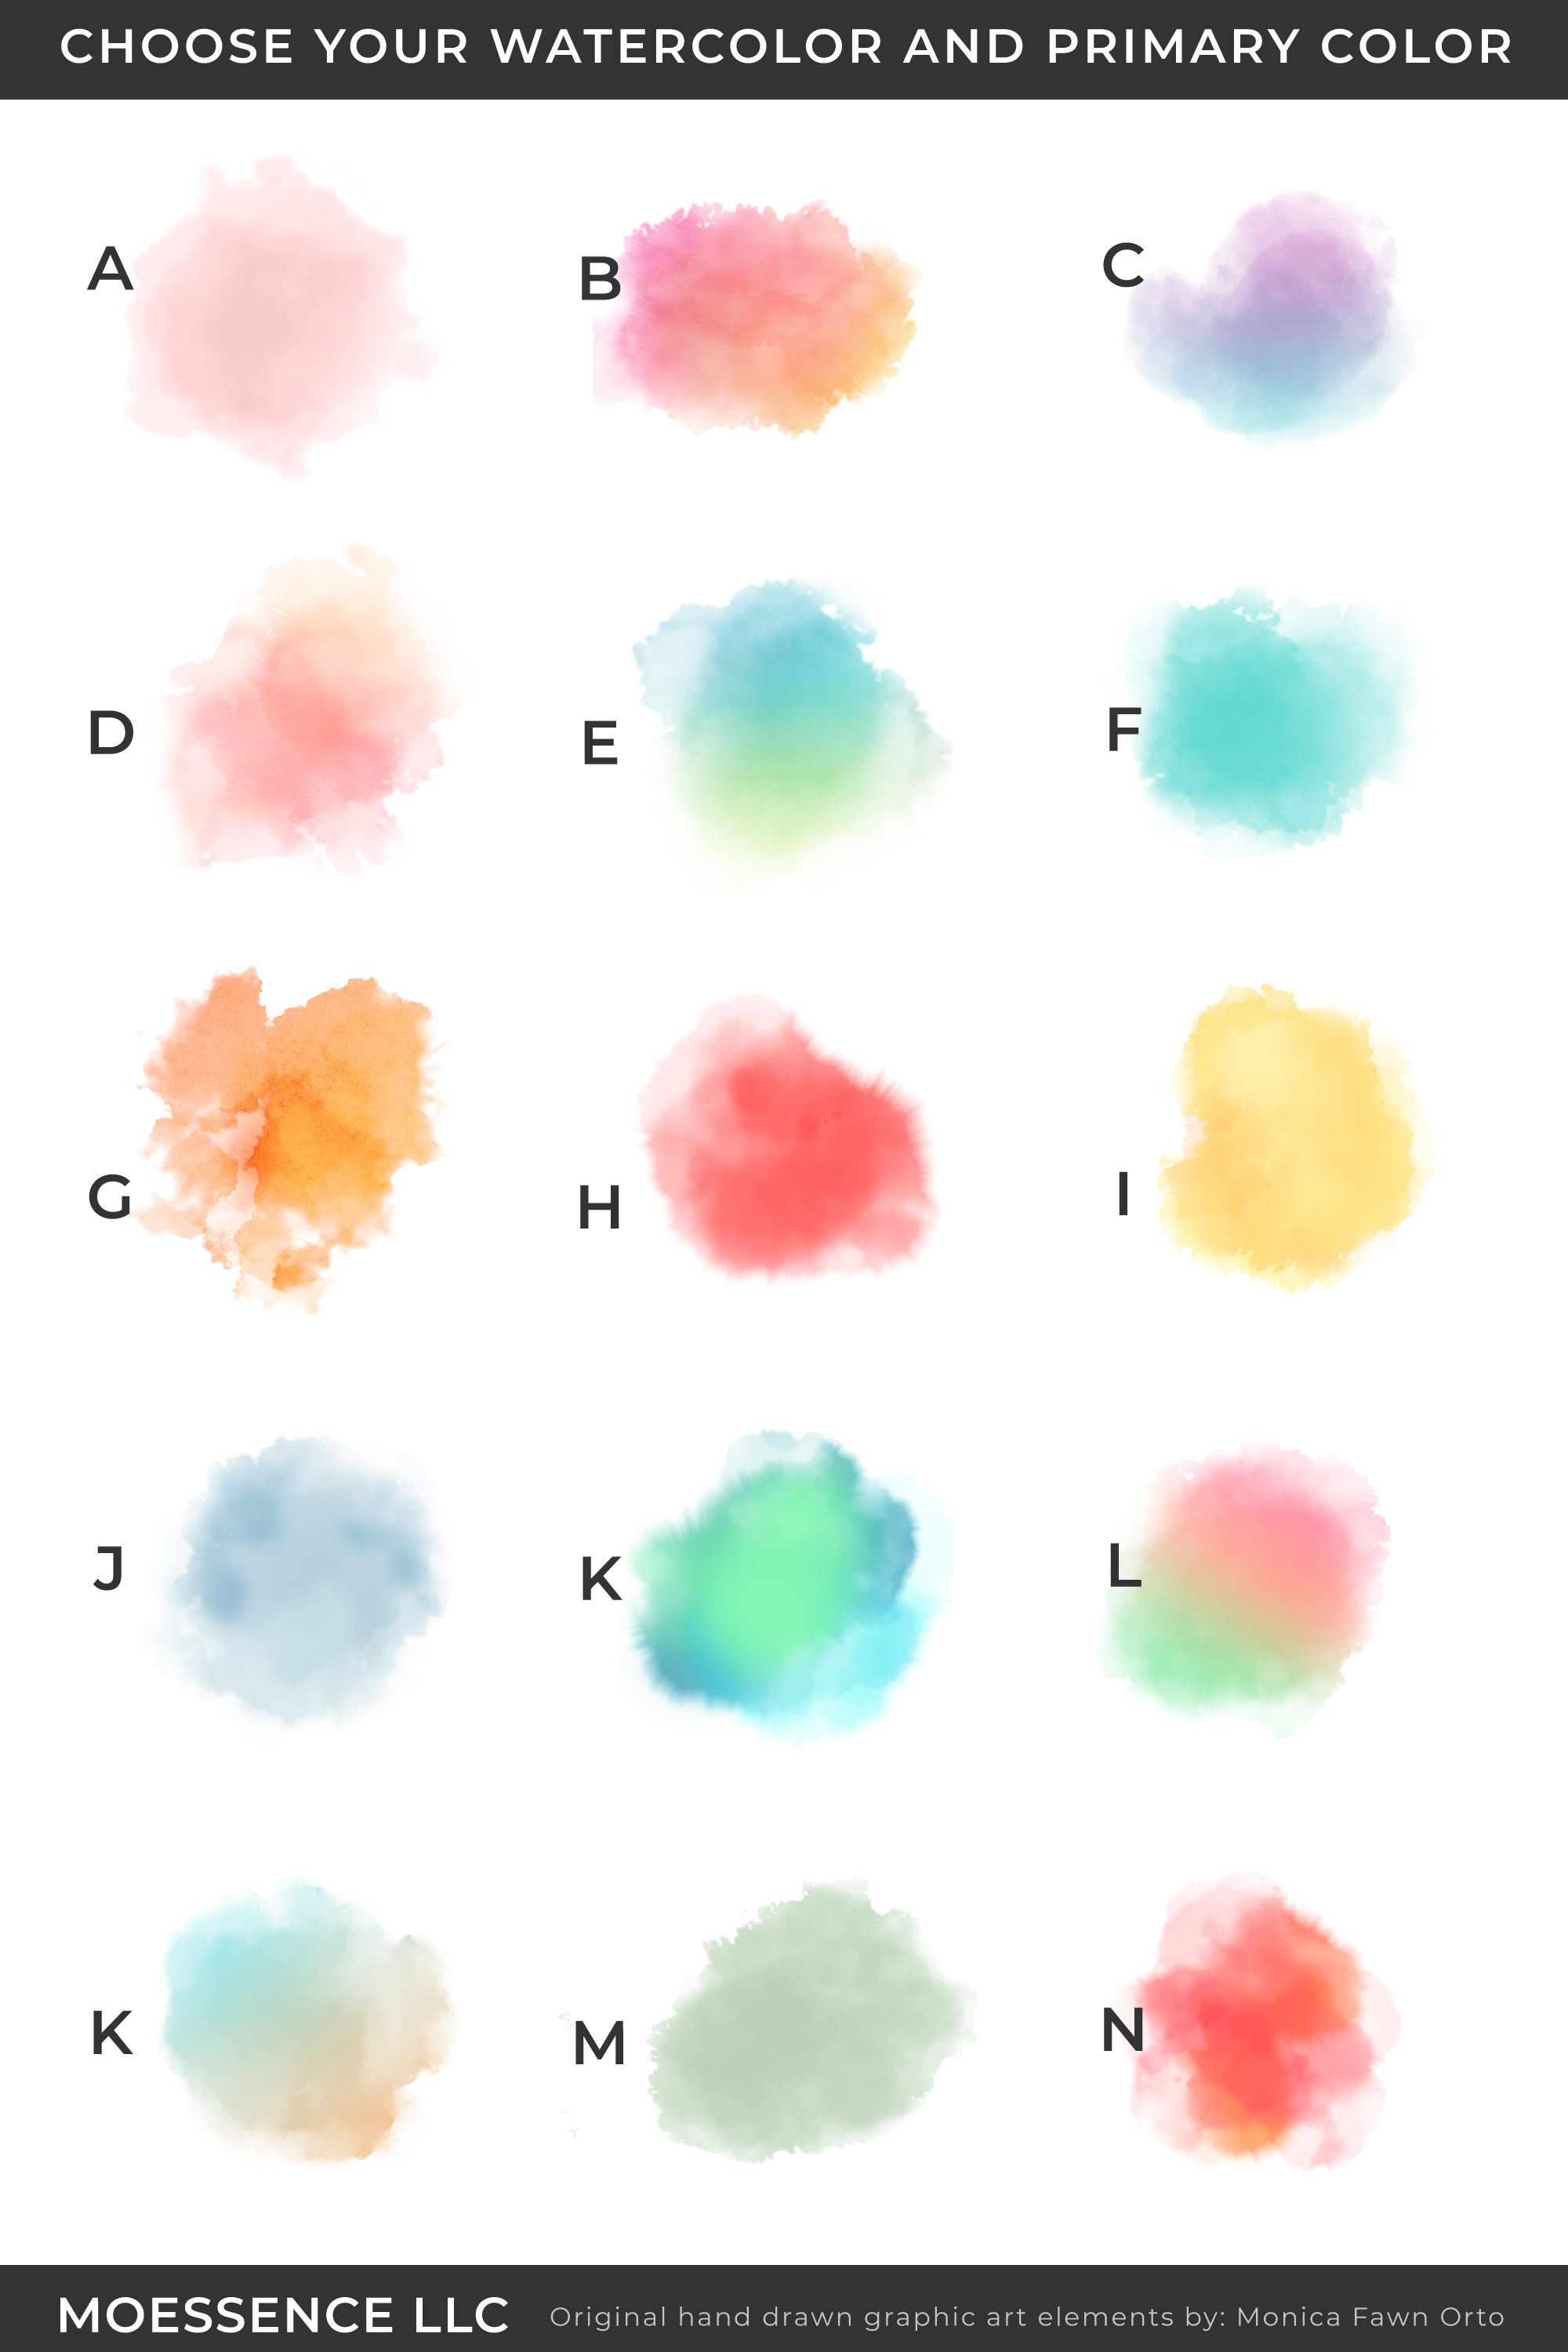 Choose Your Watercolor And Primary Color For Your Logo Design